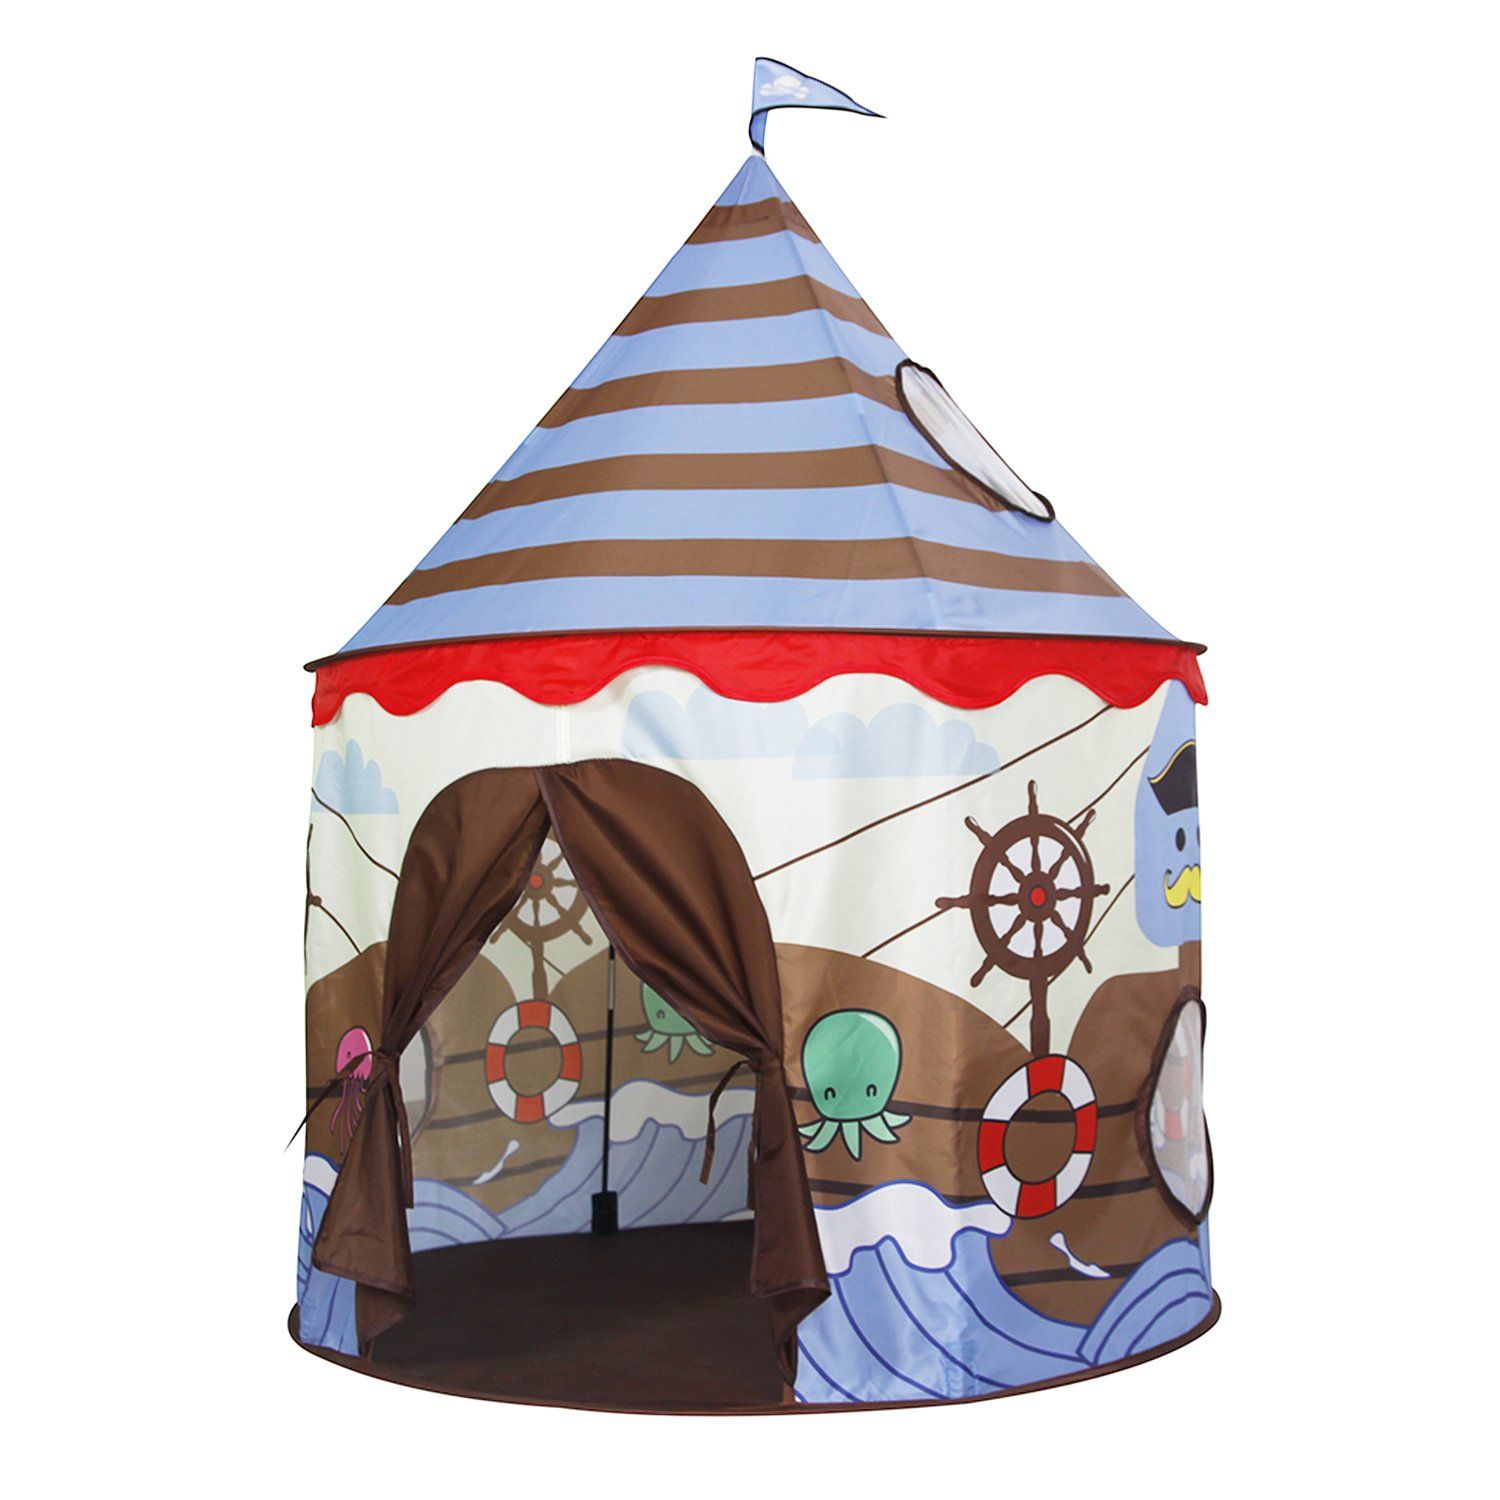 Homfu Play Tent For Kids Castle Playhouse For Children Boys Viking Pattern Popup Tent. ?  sc 1 st  Pinterest & Homfu Play Tent For Kids Castle Playhouse For Children Boys Viking ...